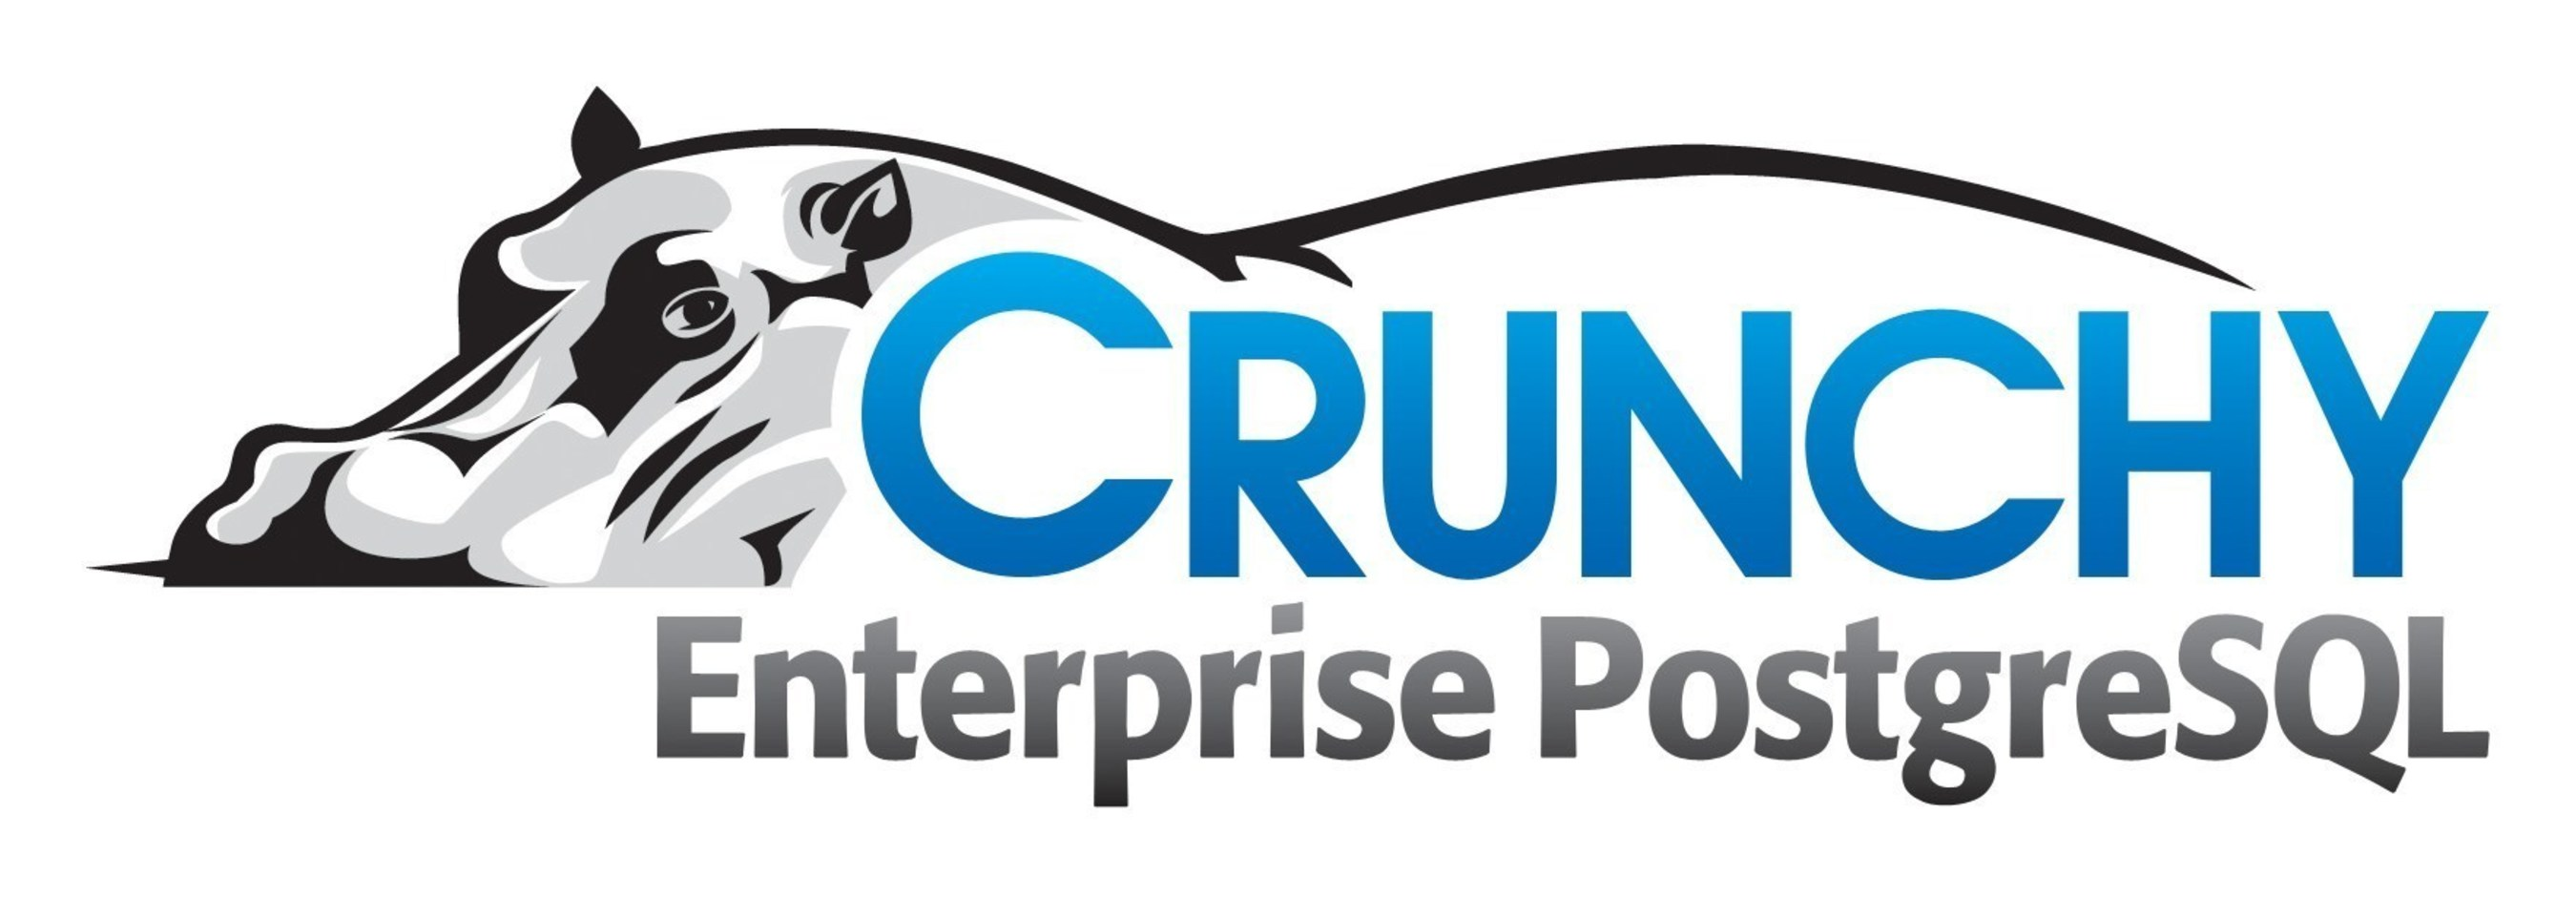 Crunchy Data Solutions, Inc. (Crunchy) is a fast growing provider of Crunchy Certified PostgreSQL, a trusted, ...